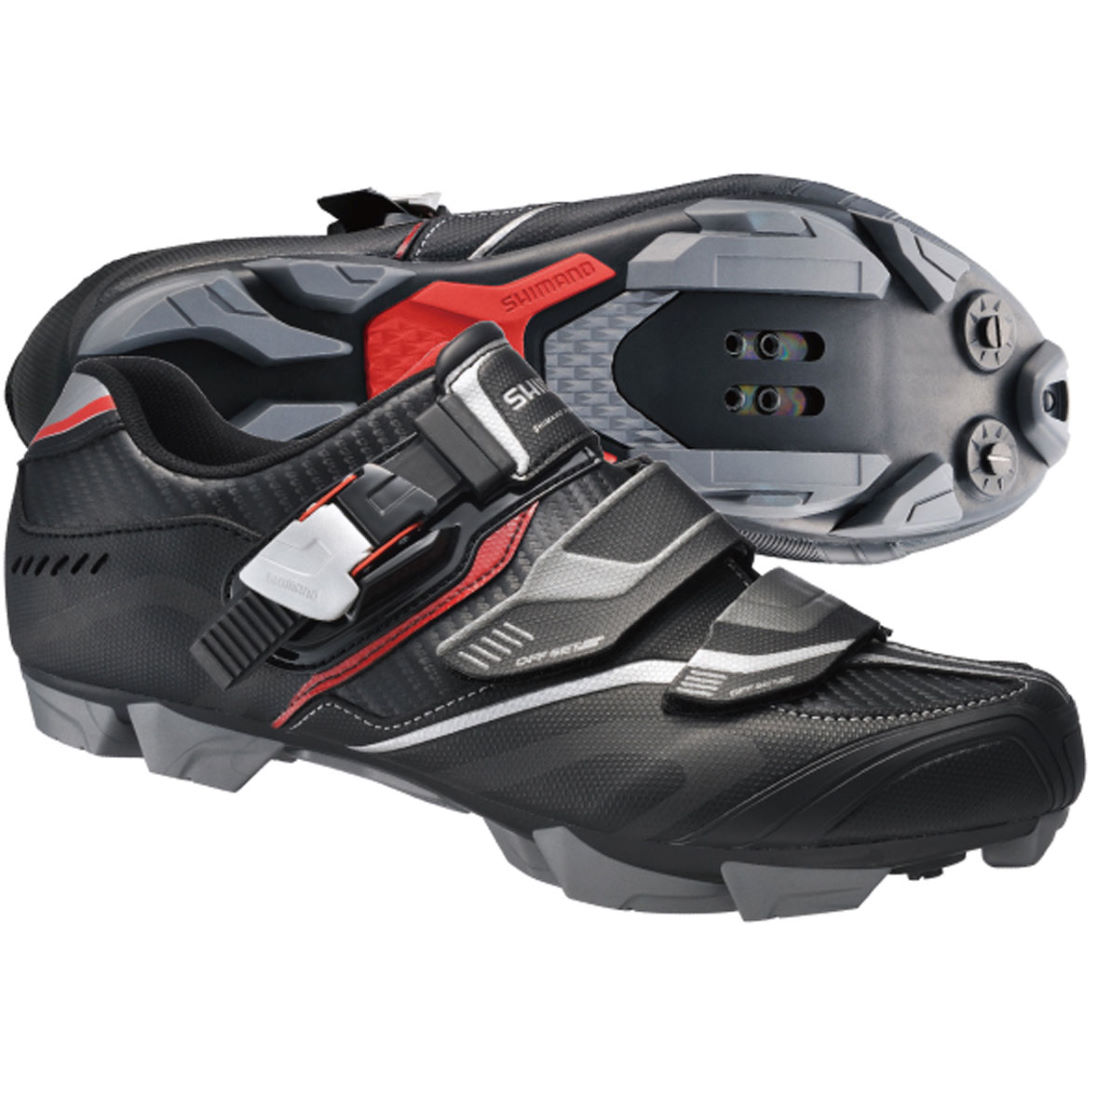 Superb range of Cycling Shoes at techhelpdesk.tk, the online cycle, run, swim & tri shop! FREE delivery to Australia on orders over $